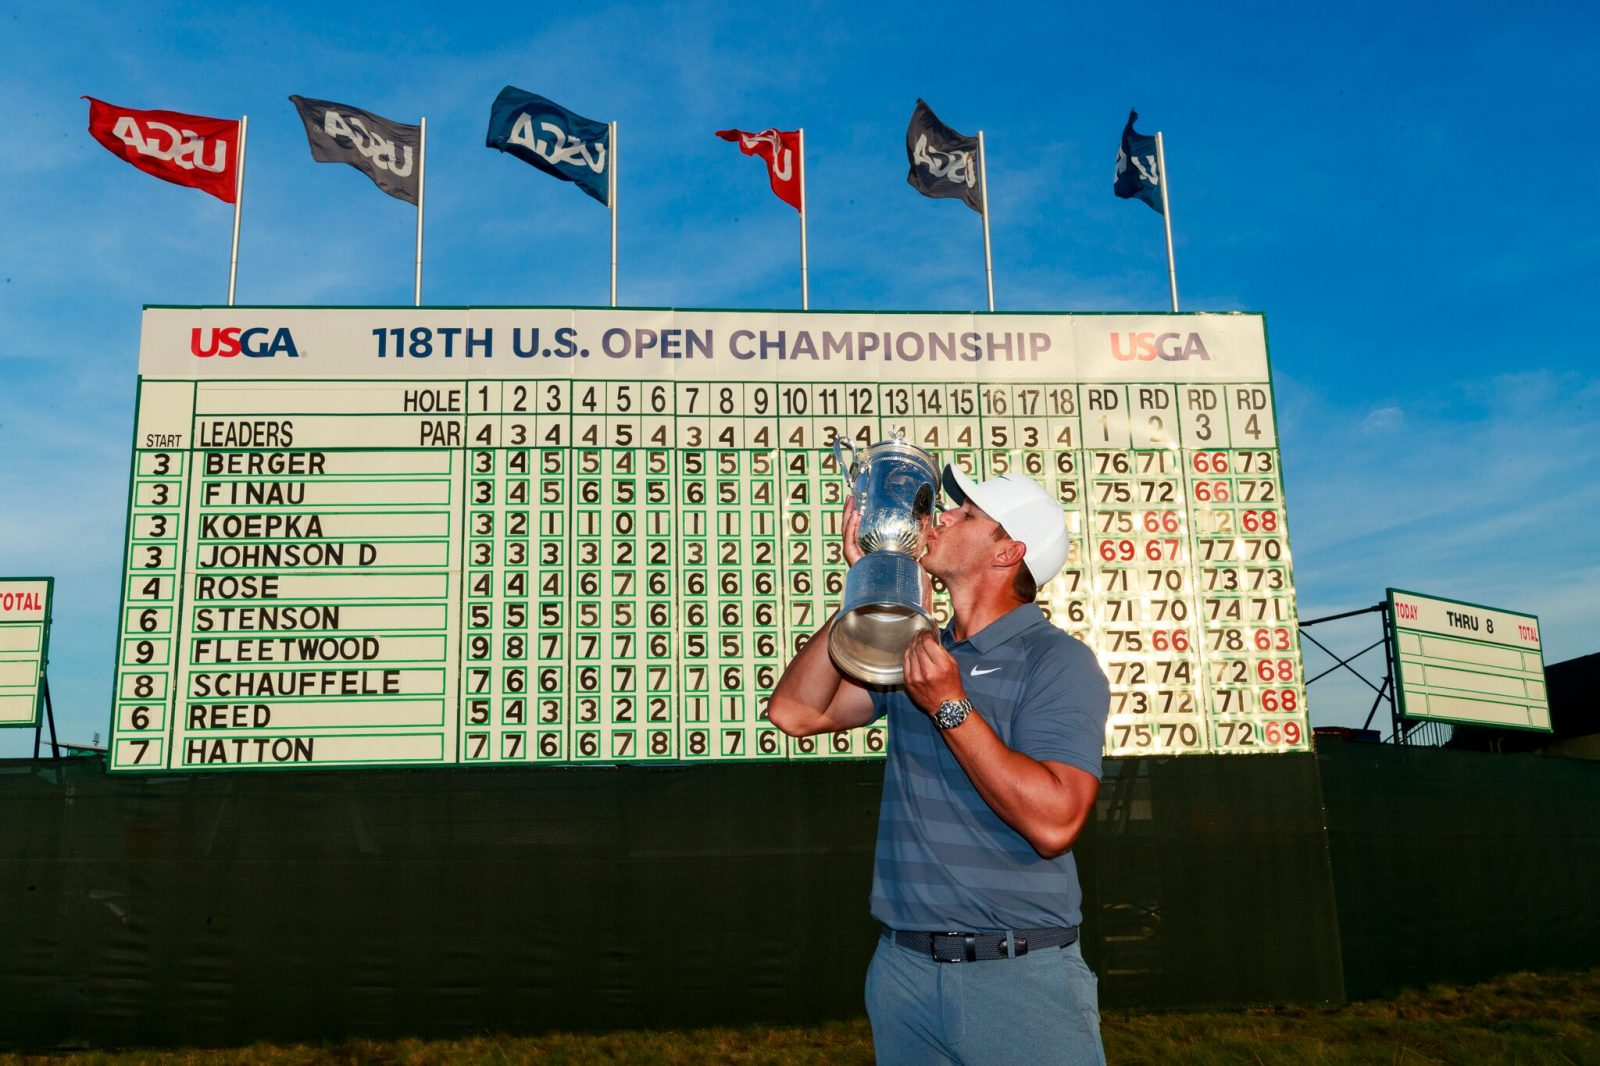 Time To Par-Tee: Pebble Beach Golf Links Hosts The 119th